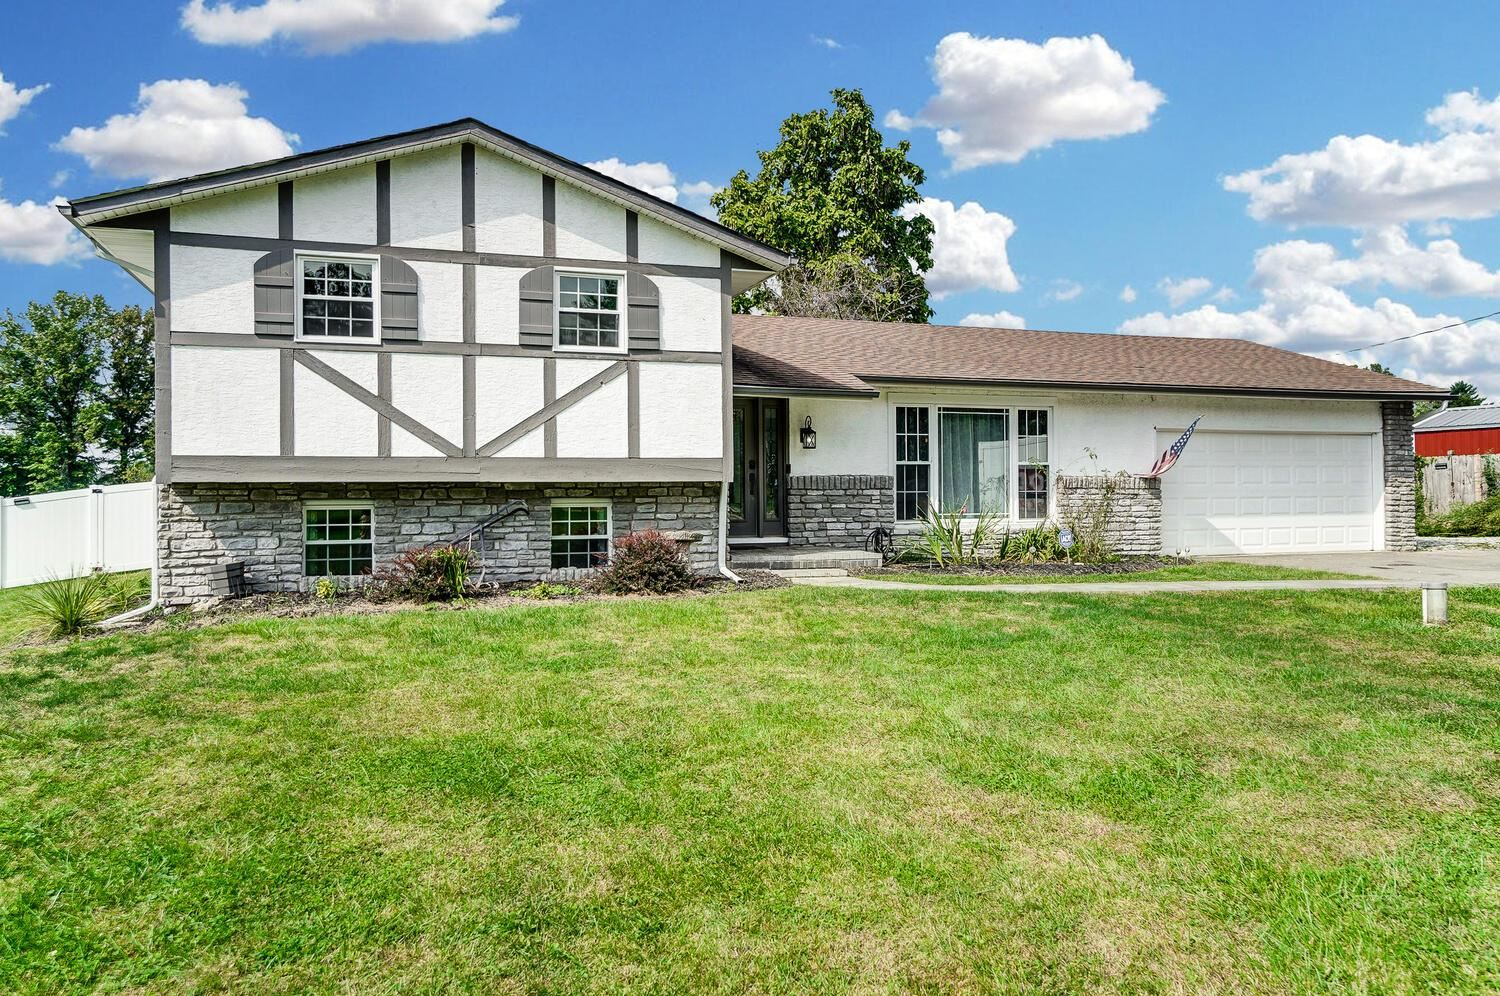 Photo of 7551 Lee Road, Westerville, OH 43081 (MLS # 221039085)